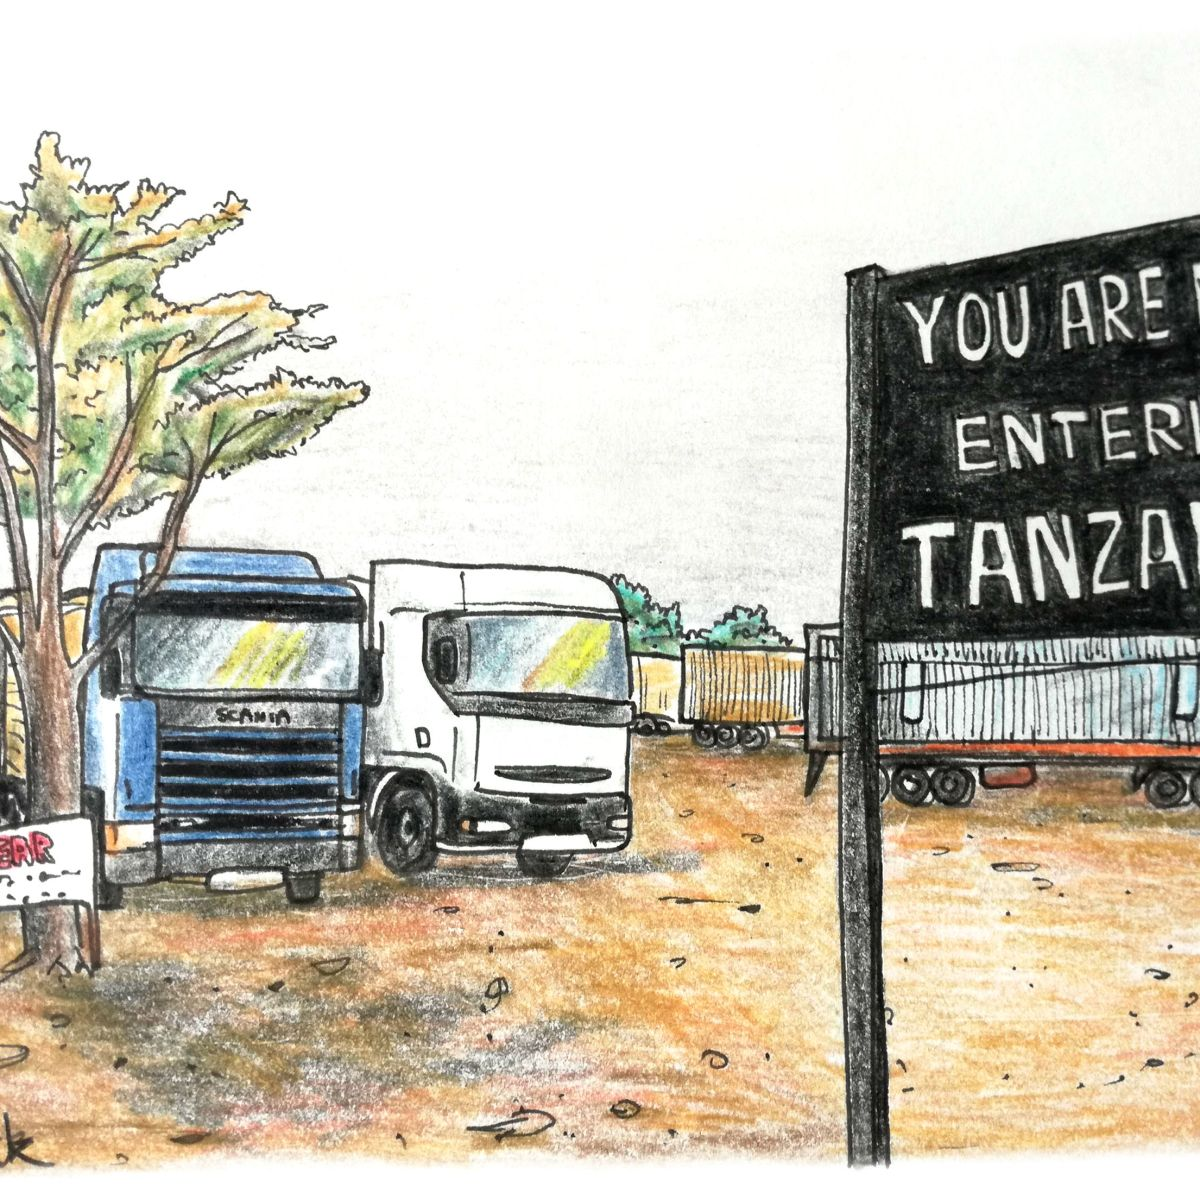 sketch of trucks parked at the zambia tanzania border crossing